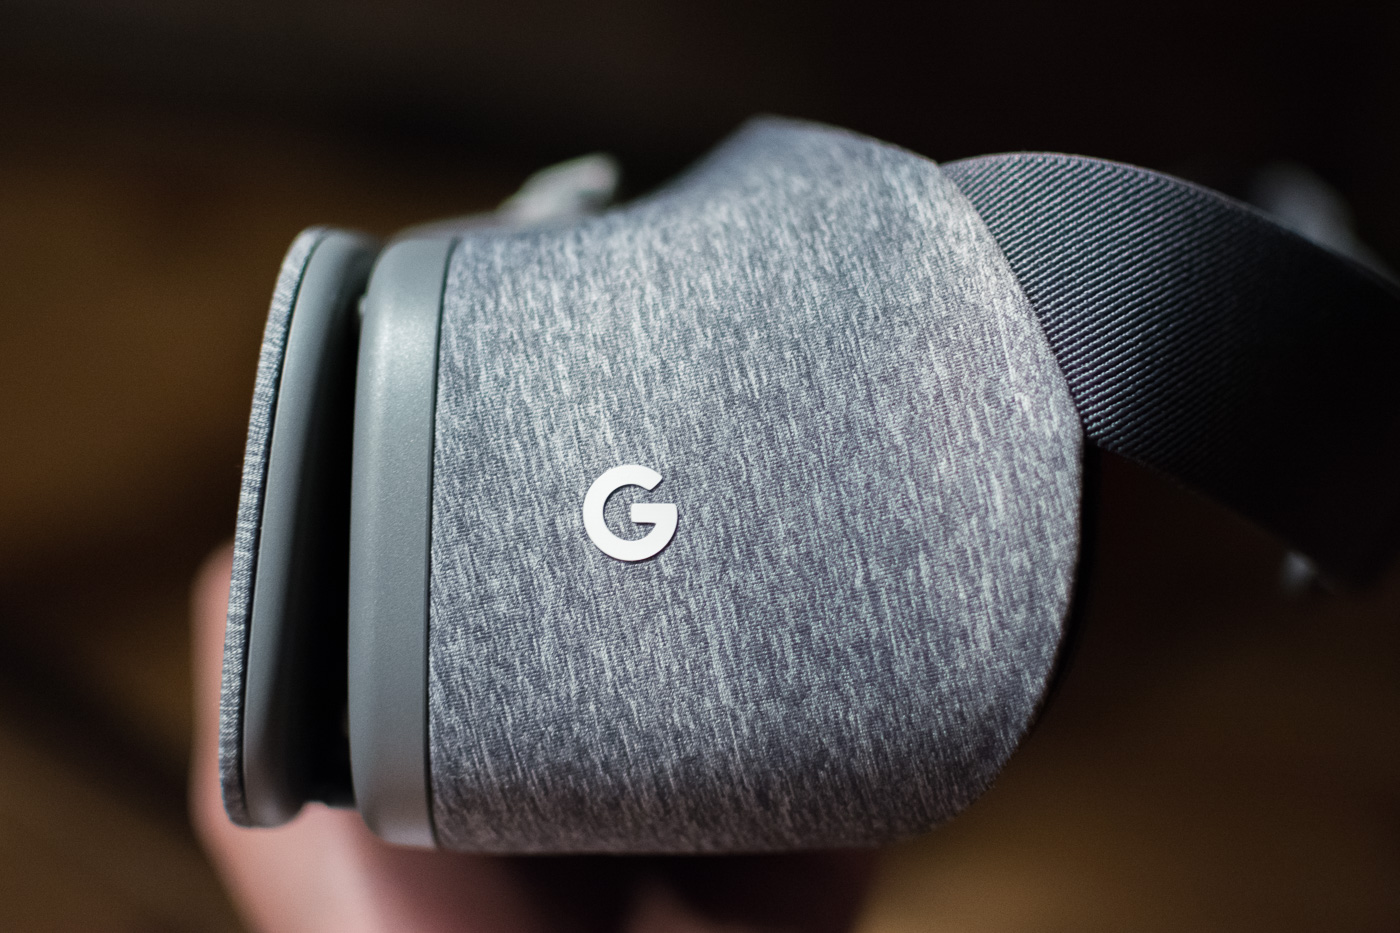 daydream-view-vr-2-of-7